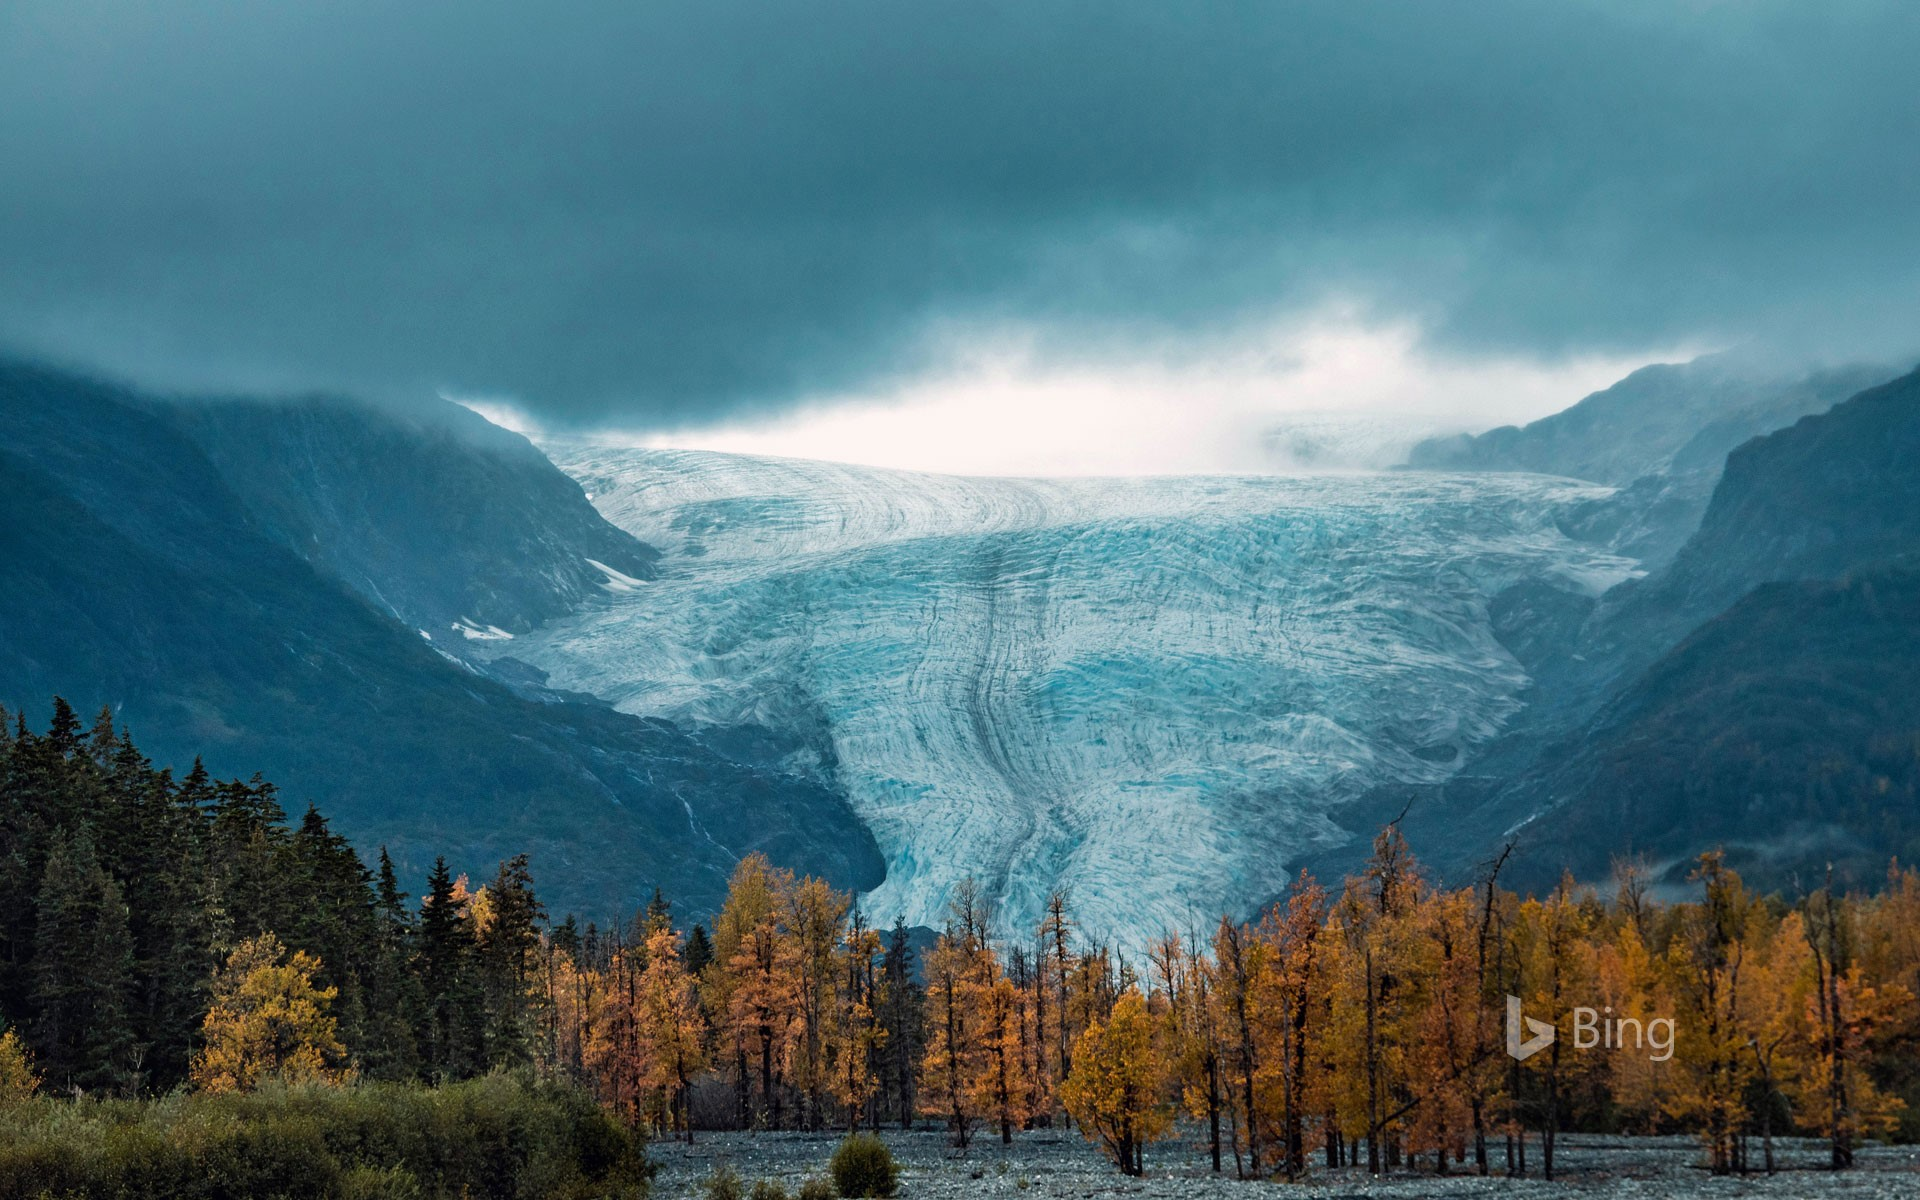 Exit Glacier at Kenai Fjords National Park in Alaska